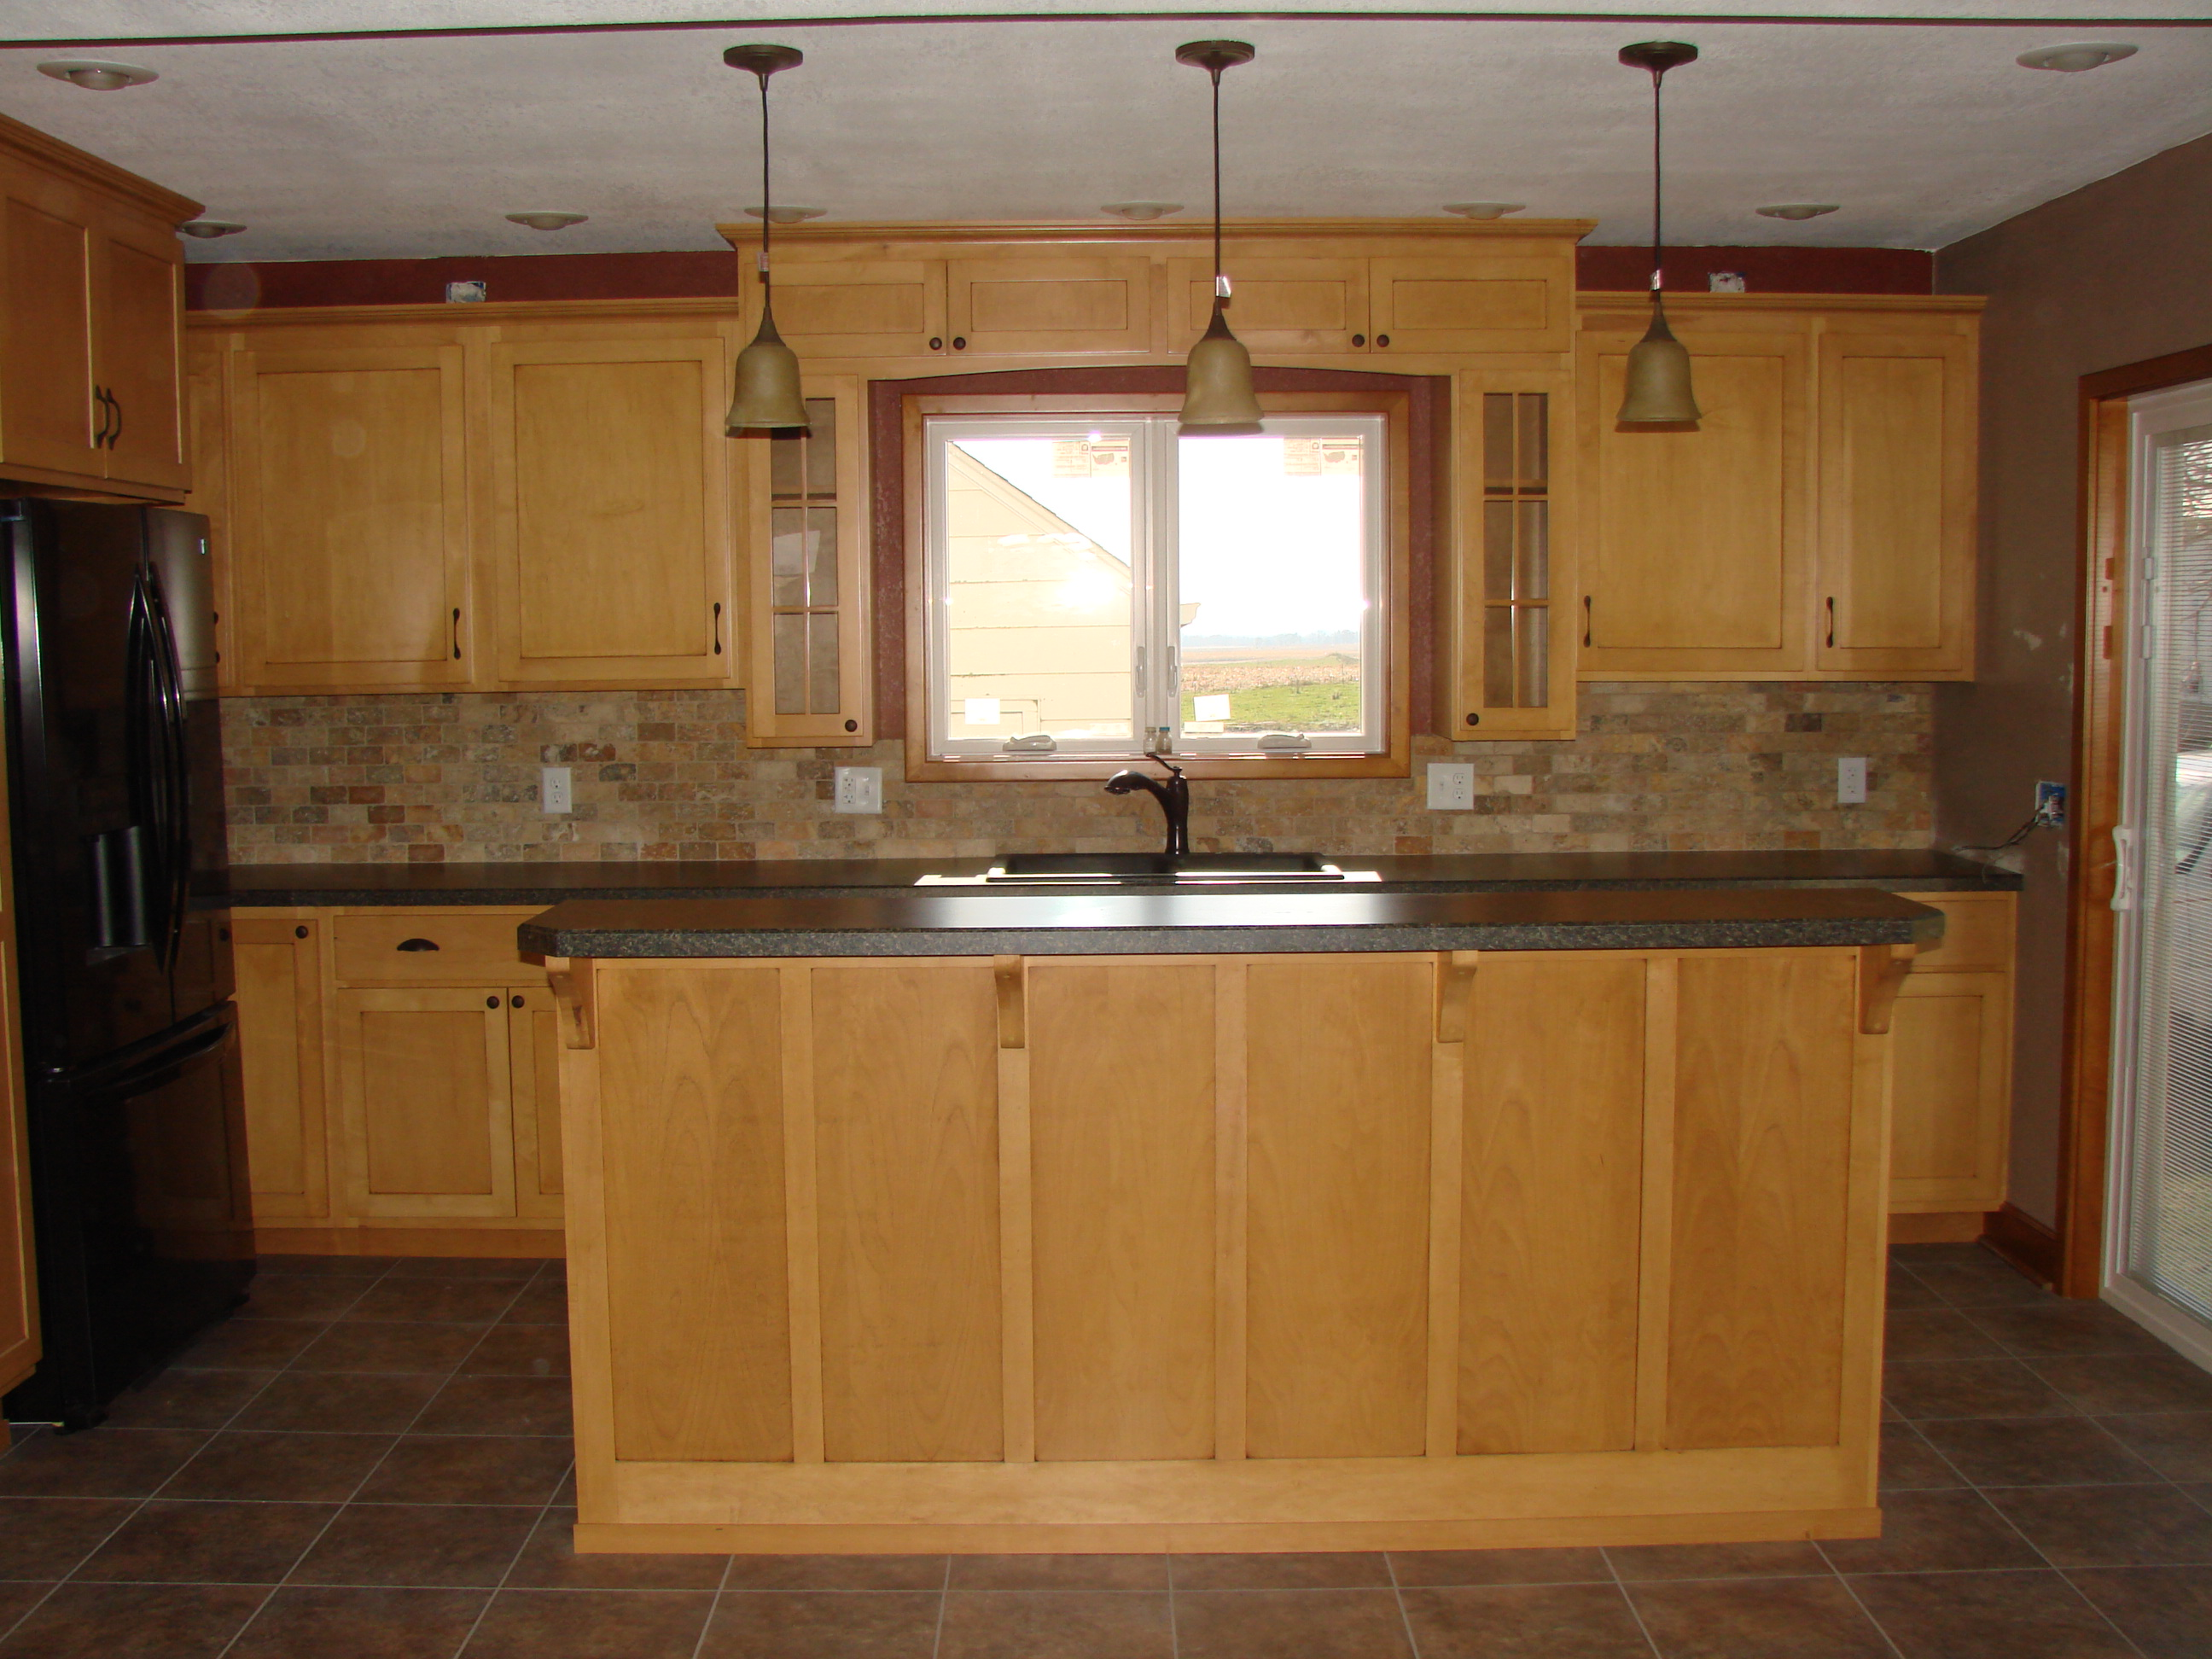 how to burner pipe wood stove countertops cabinets wooden kitchen corbels countertop about of clean white fair